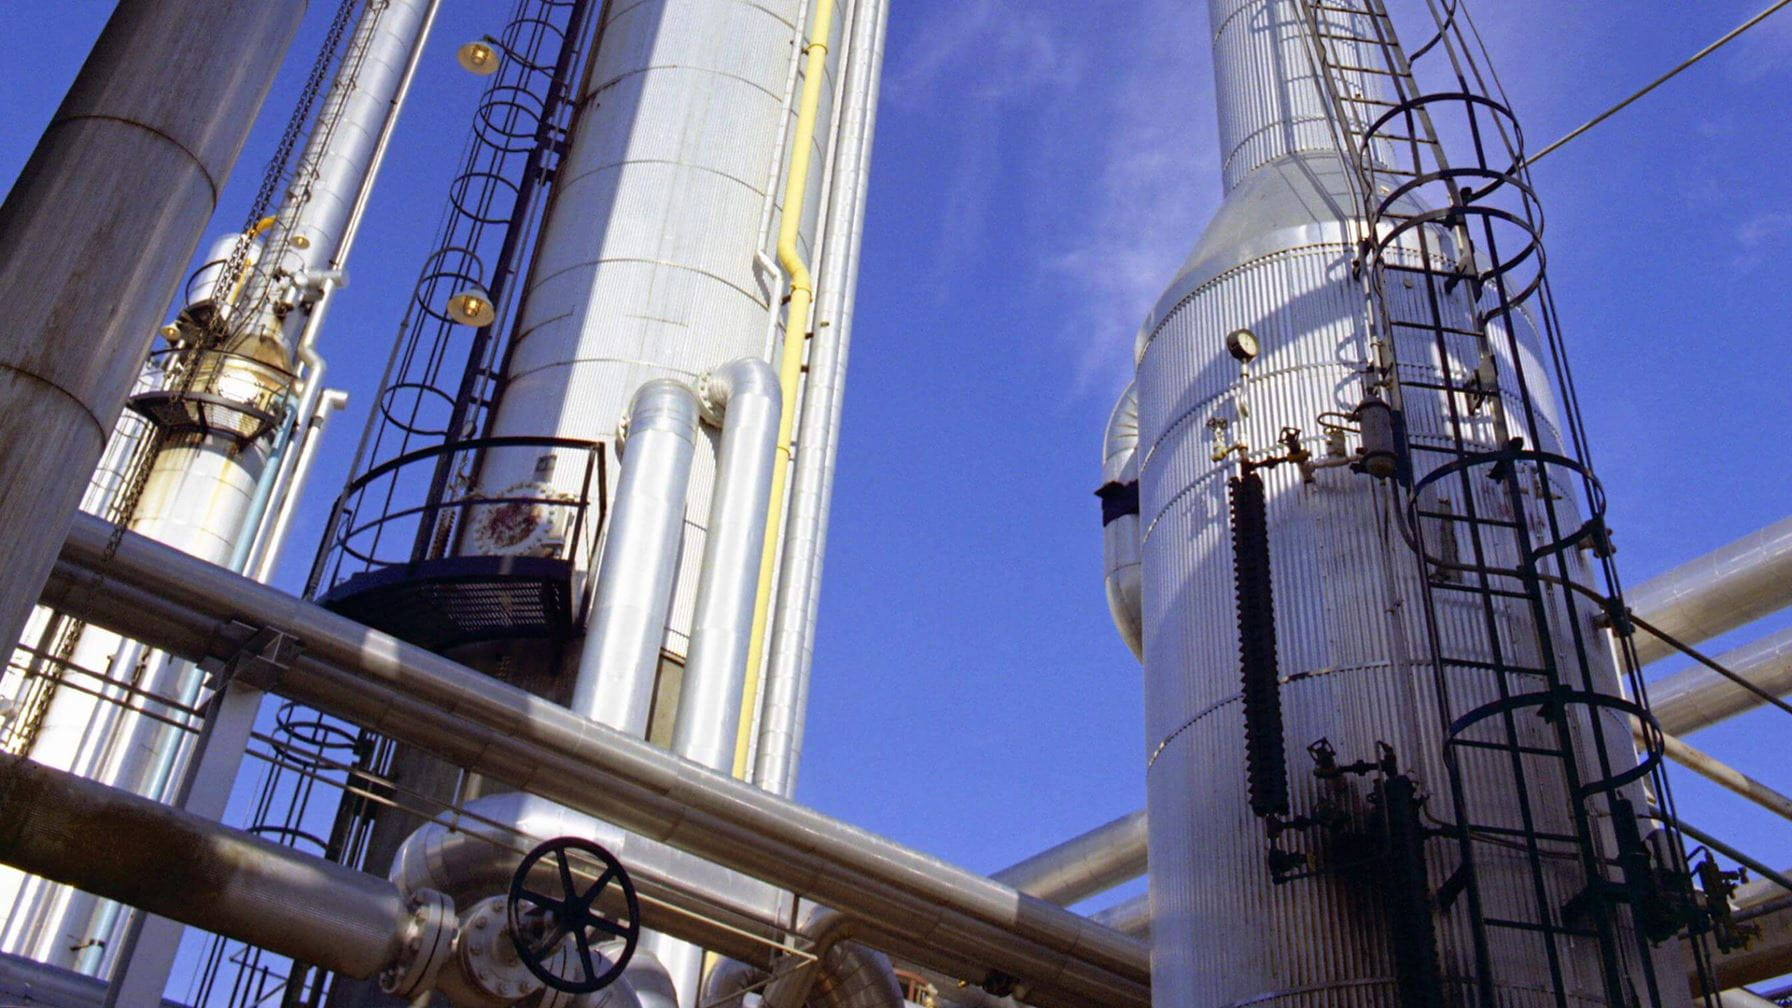 Cooling saves refinery money